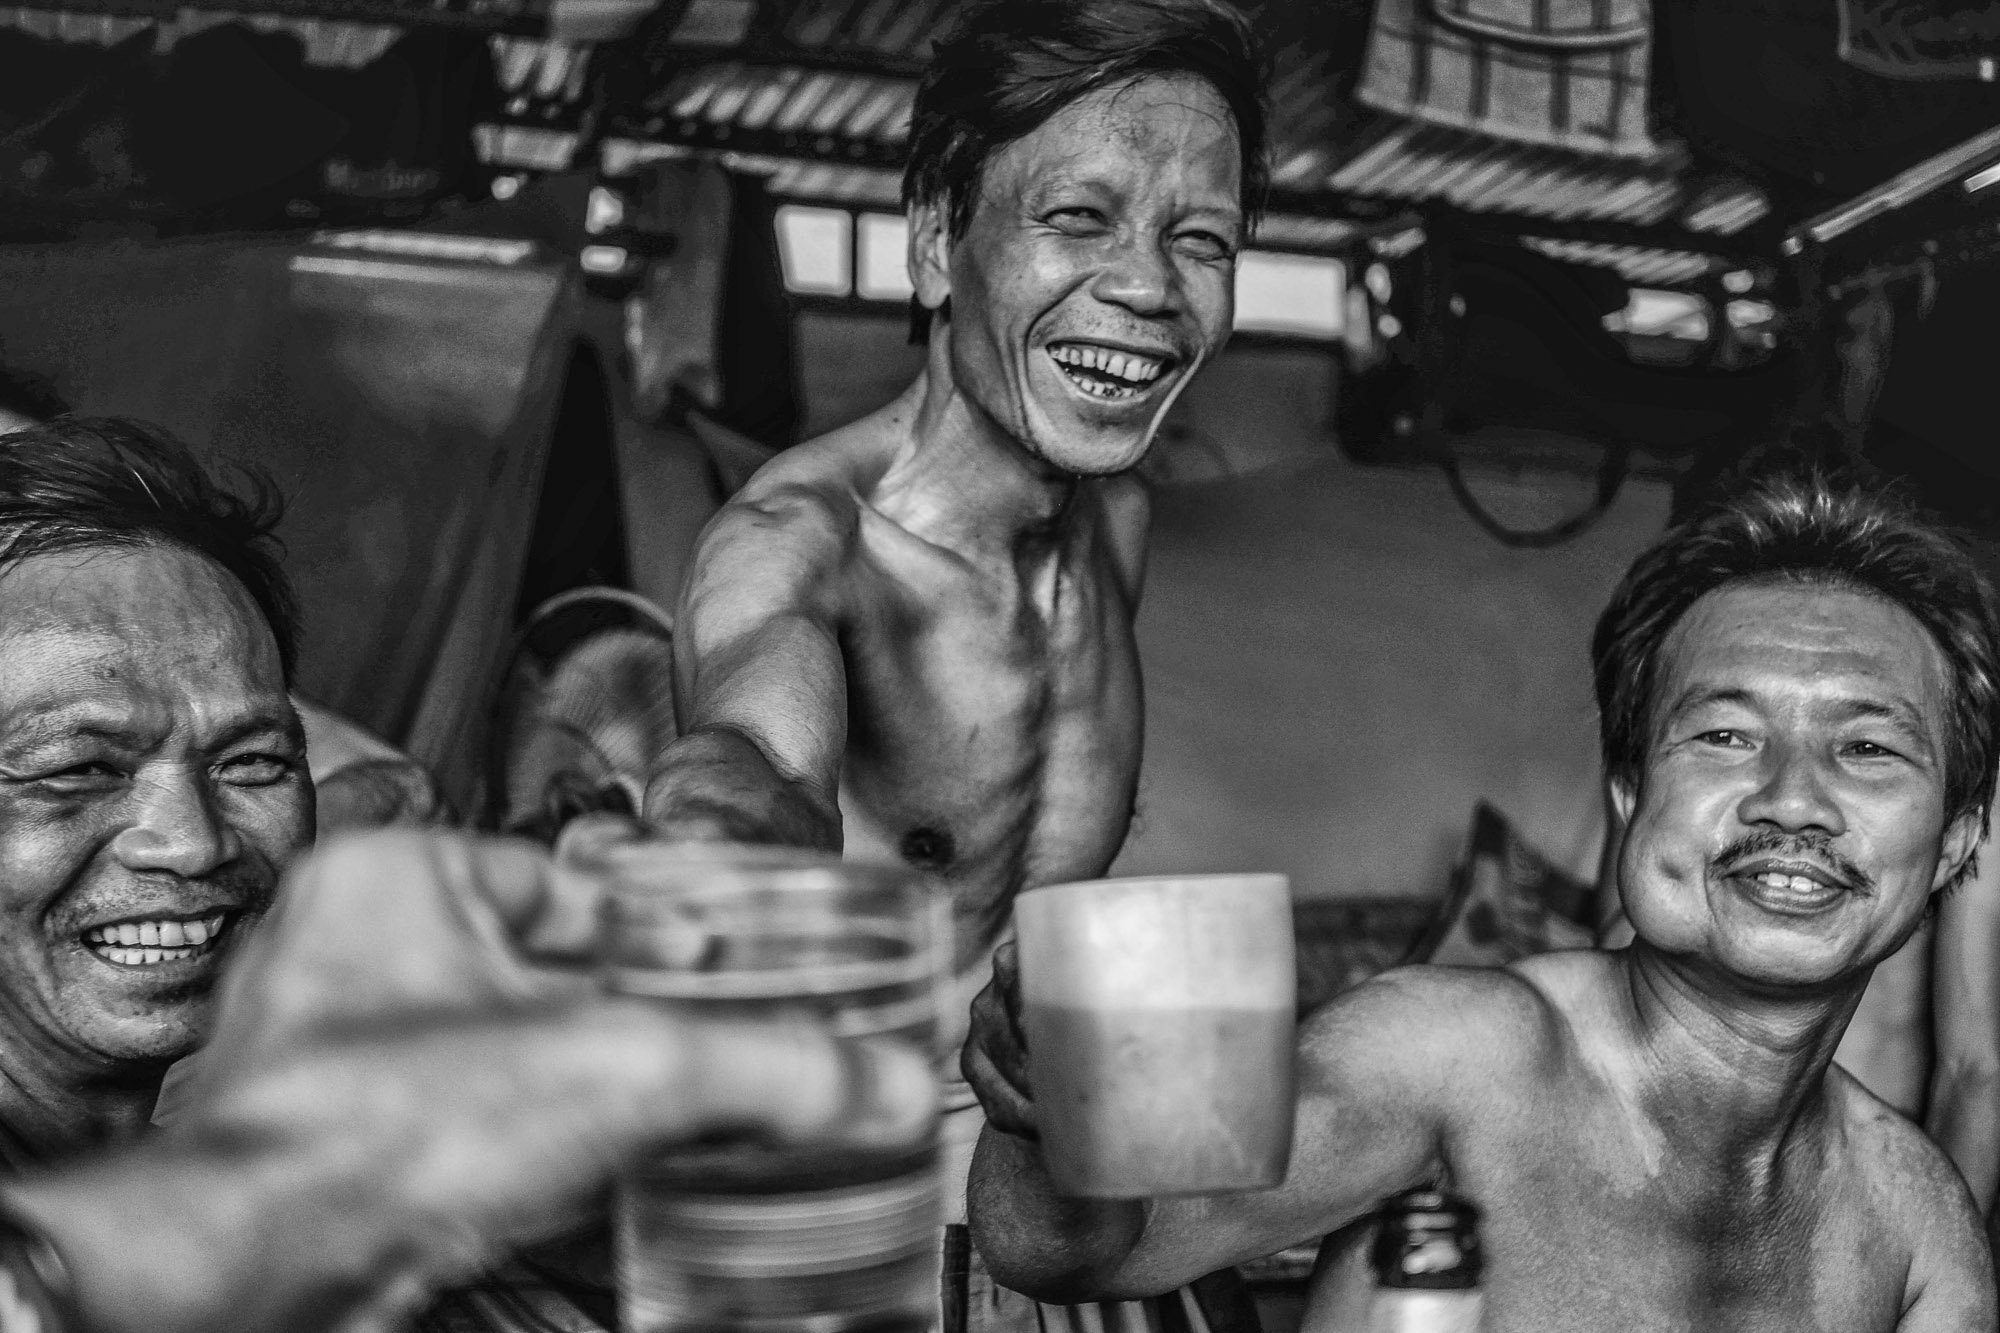 worker vietnamese drinking smiling VIENTIANE Laos asia street photography photographer